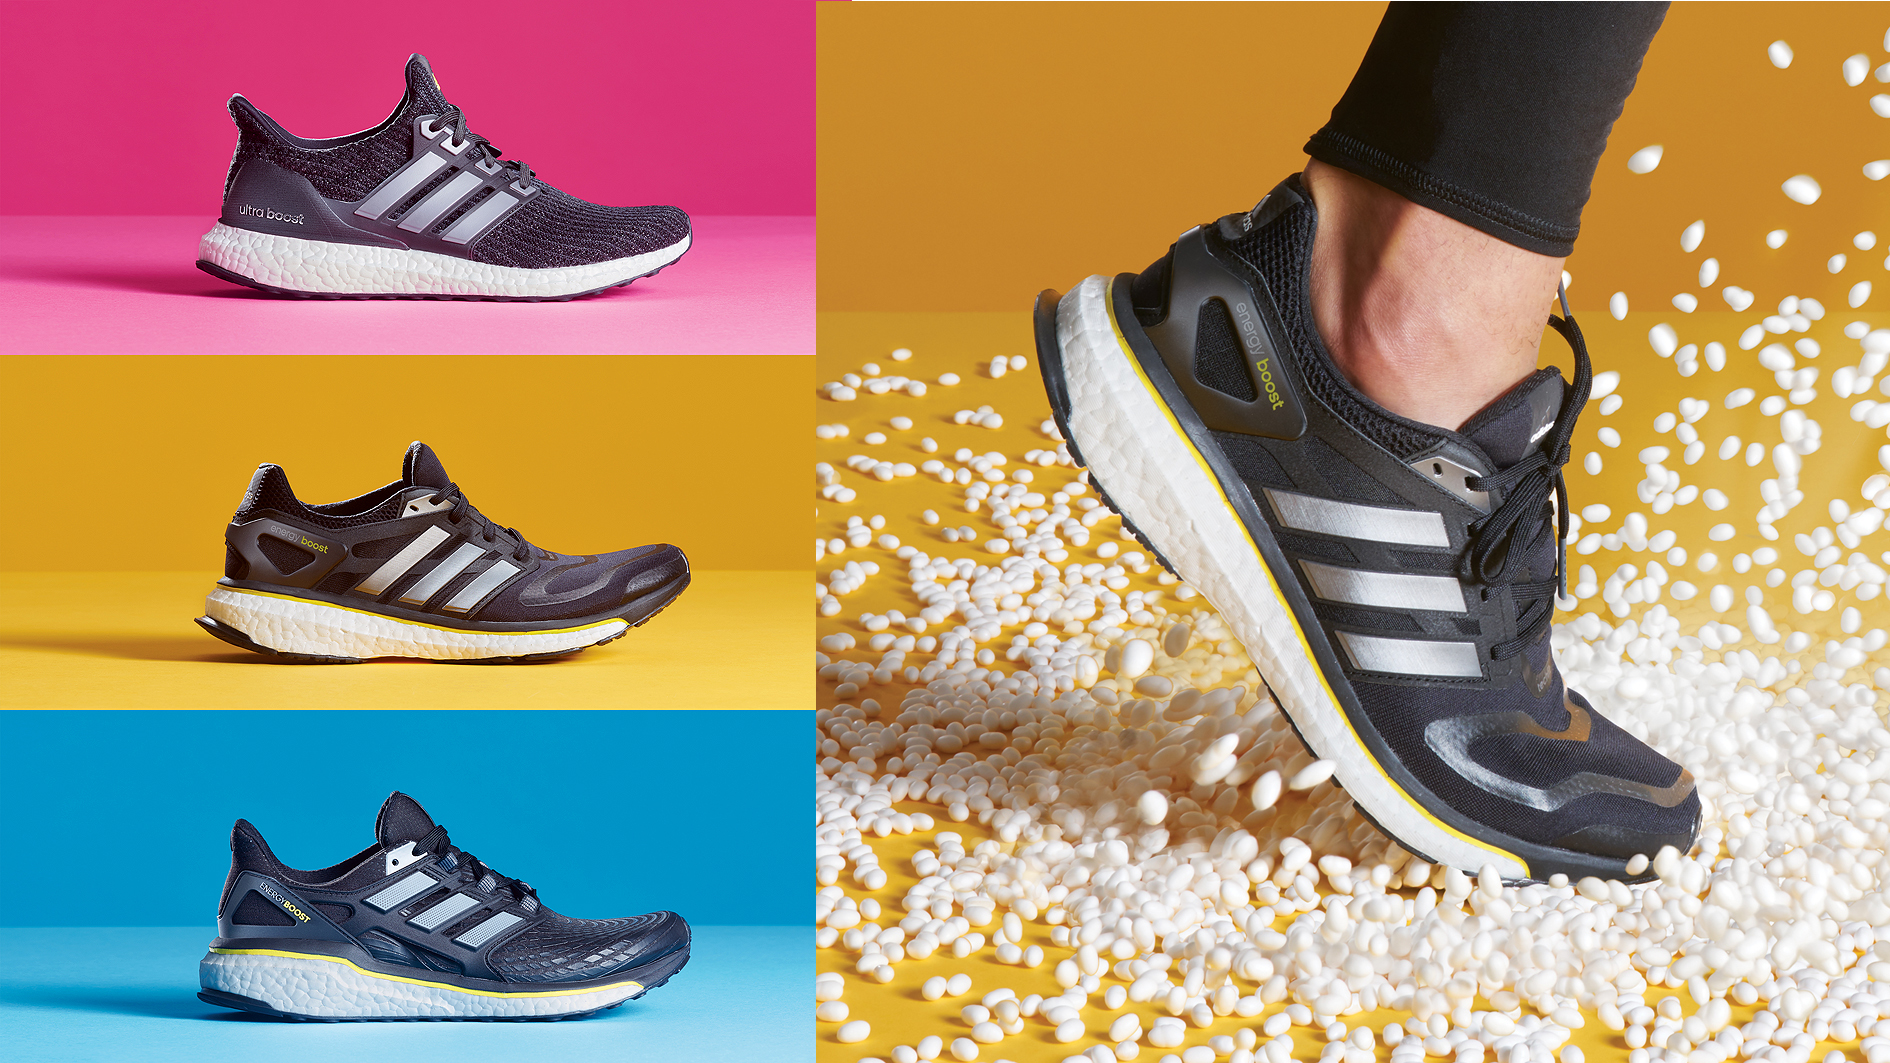 buy popular 6e911 3d604 Adidas Boost gets even Boostier with triple drop to celebrate its 5th  birthday